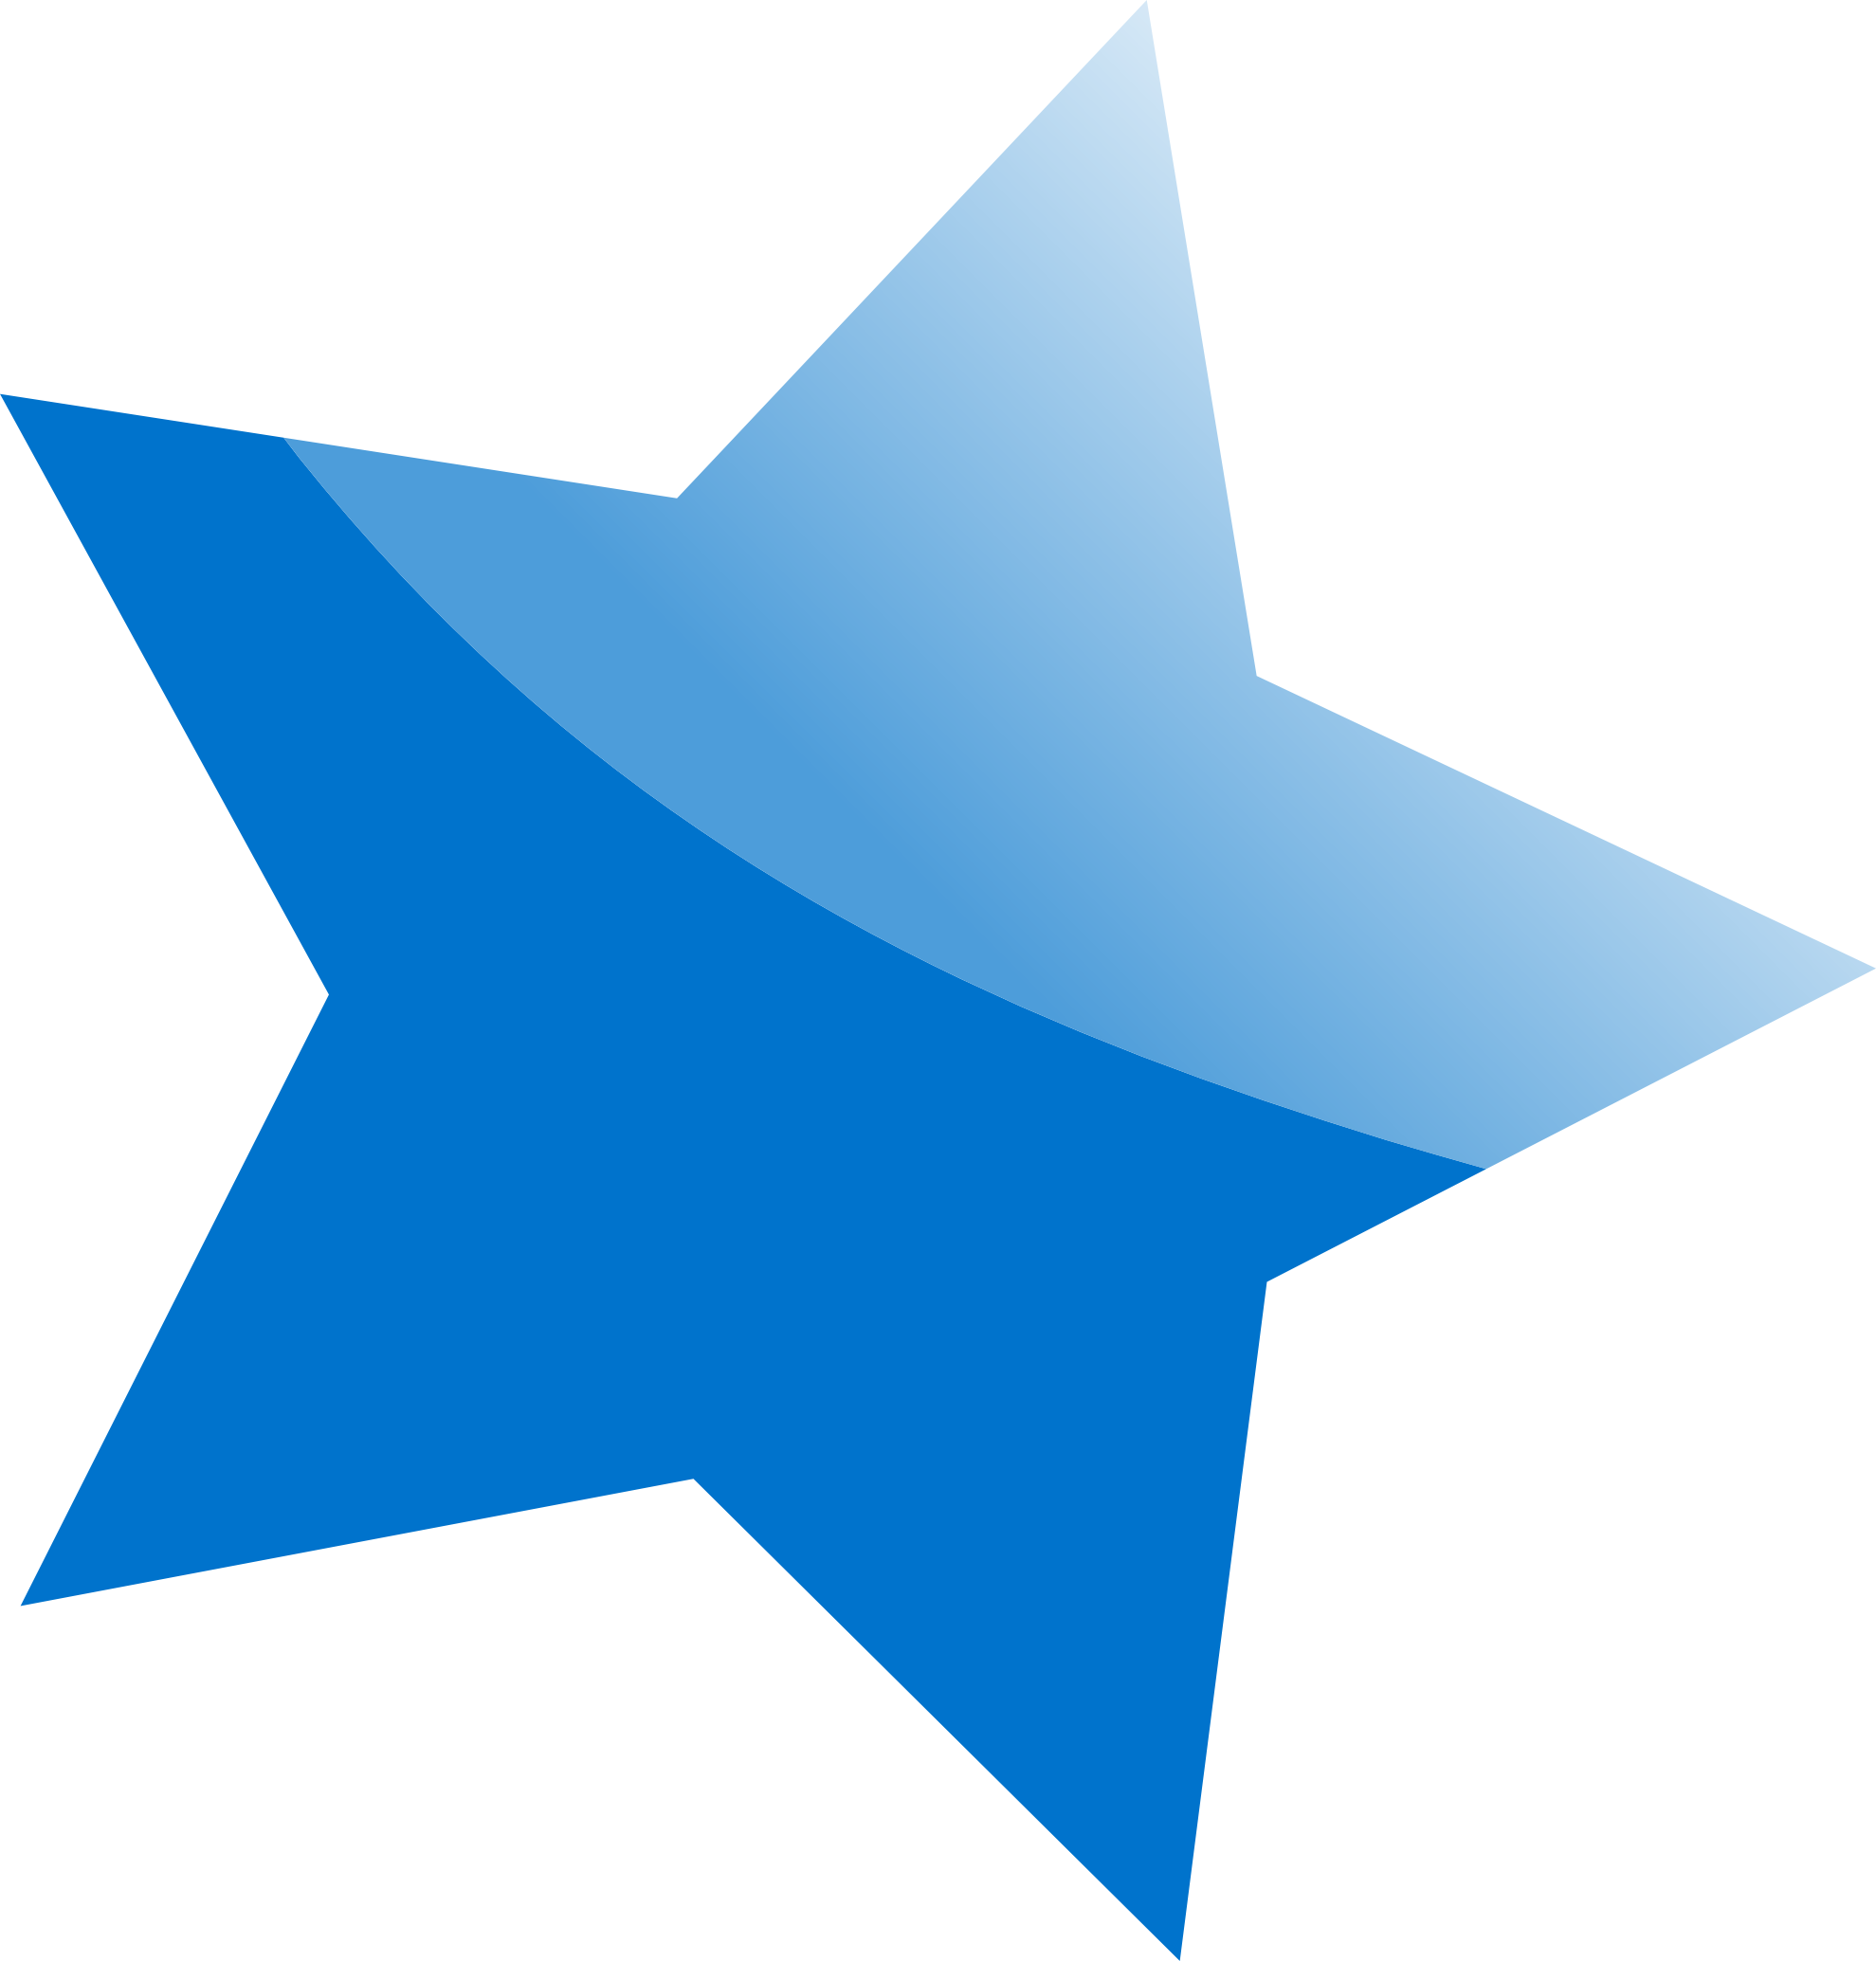 blue star PNG image